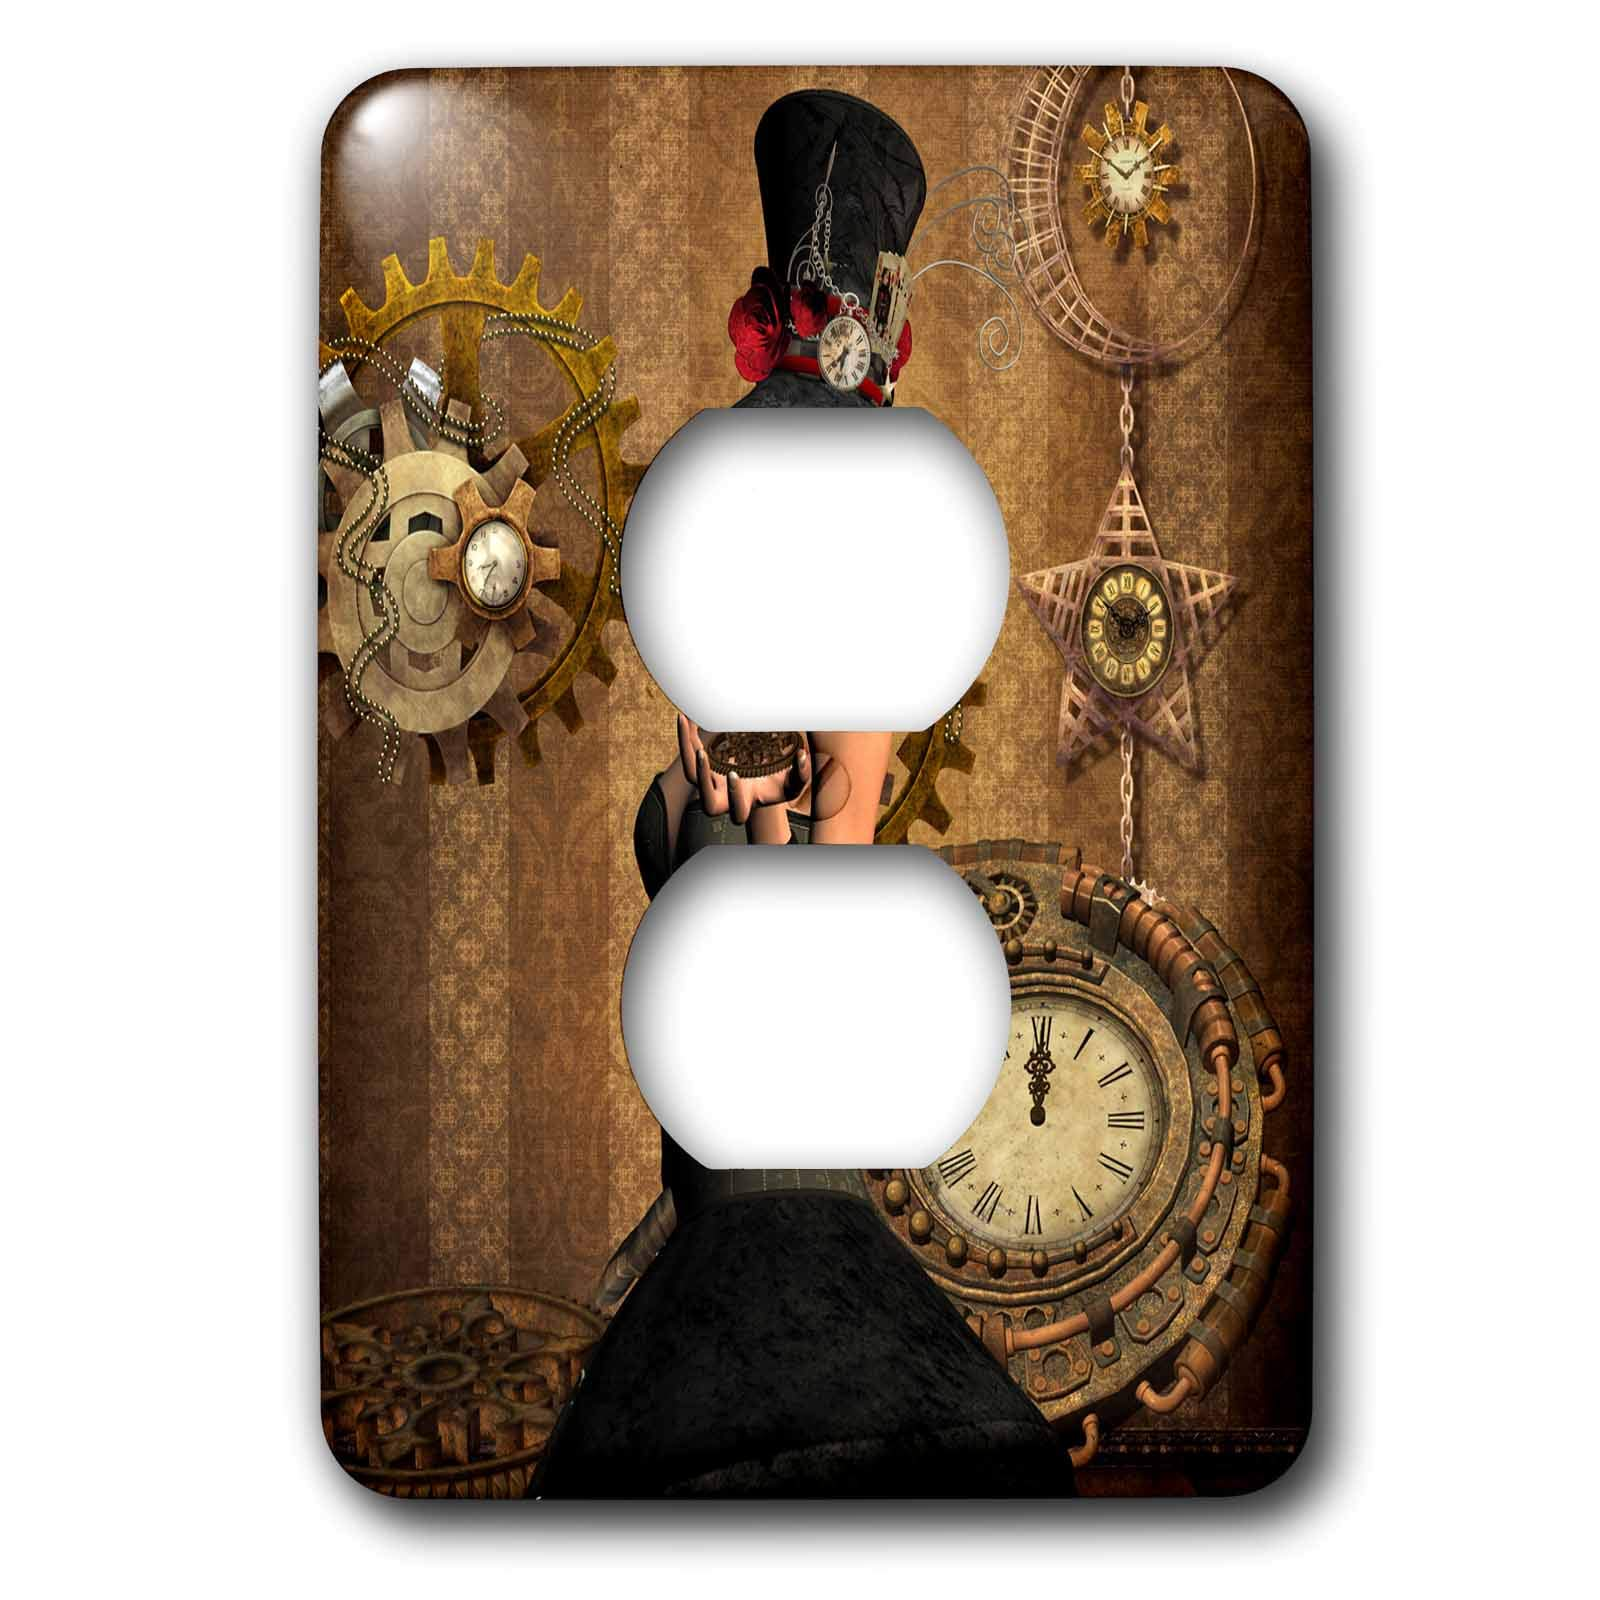 3dRose Heike Köhnen Design Steampunk - Steampunk women with clocks and gears vintage design - Light Switch Covers - 2 plug outlet cover (lsp_287309_6)